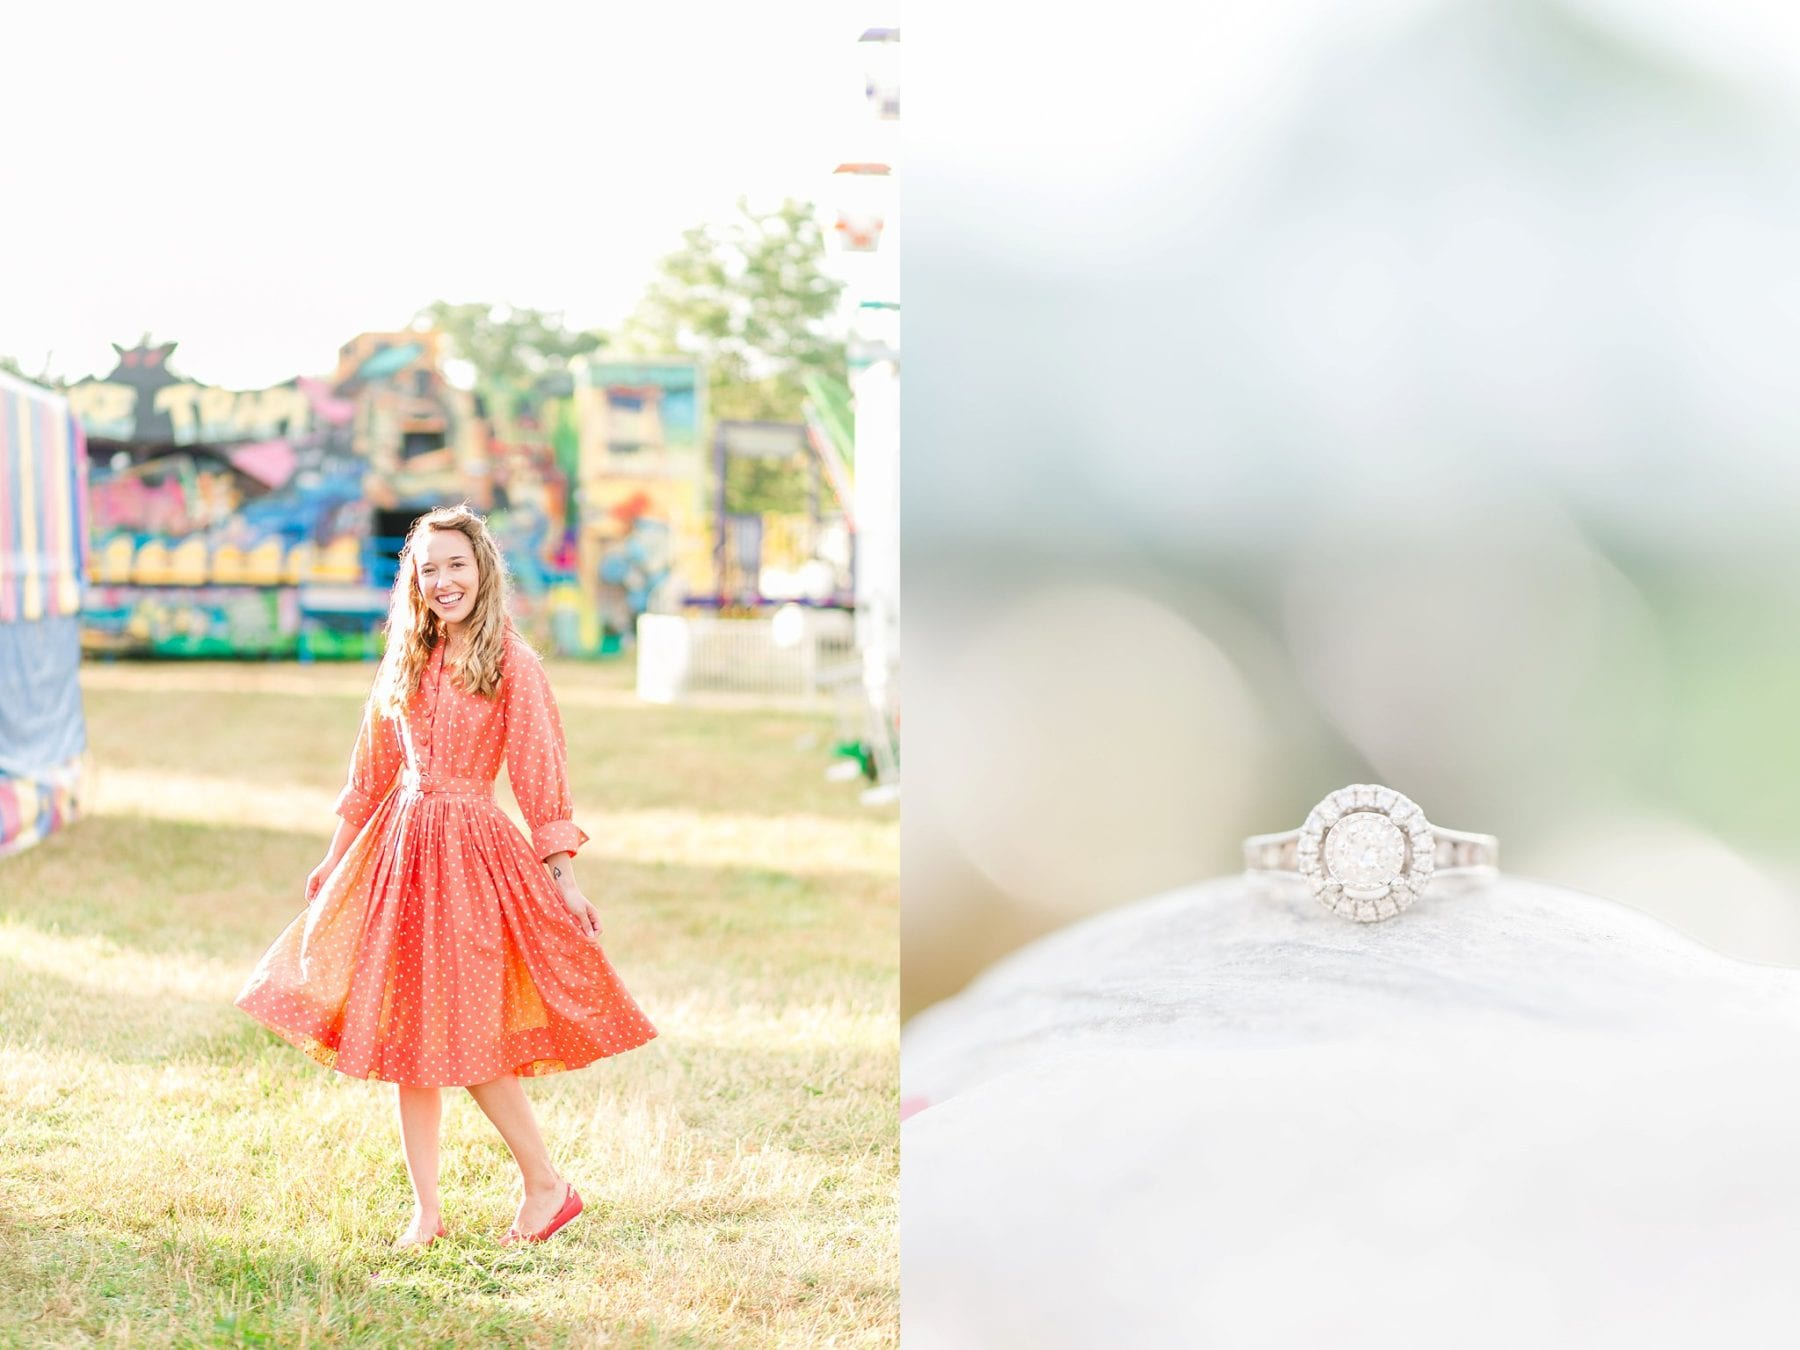 County Fair Engagement Photos Virginia Wedding Photographer Megan Kelsey Photography Samantha & Charles-171.JPG